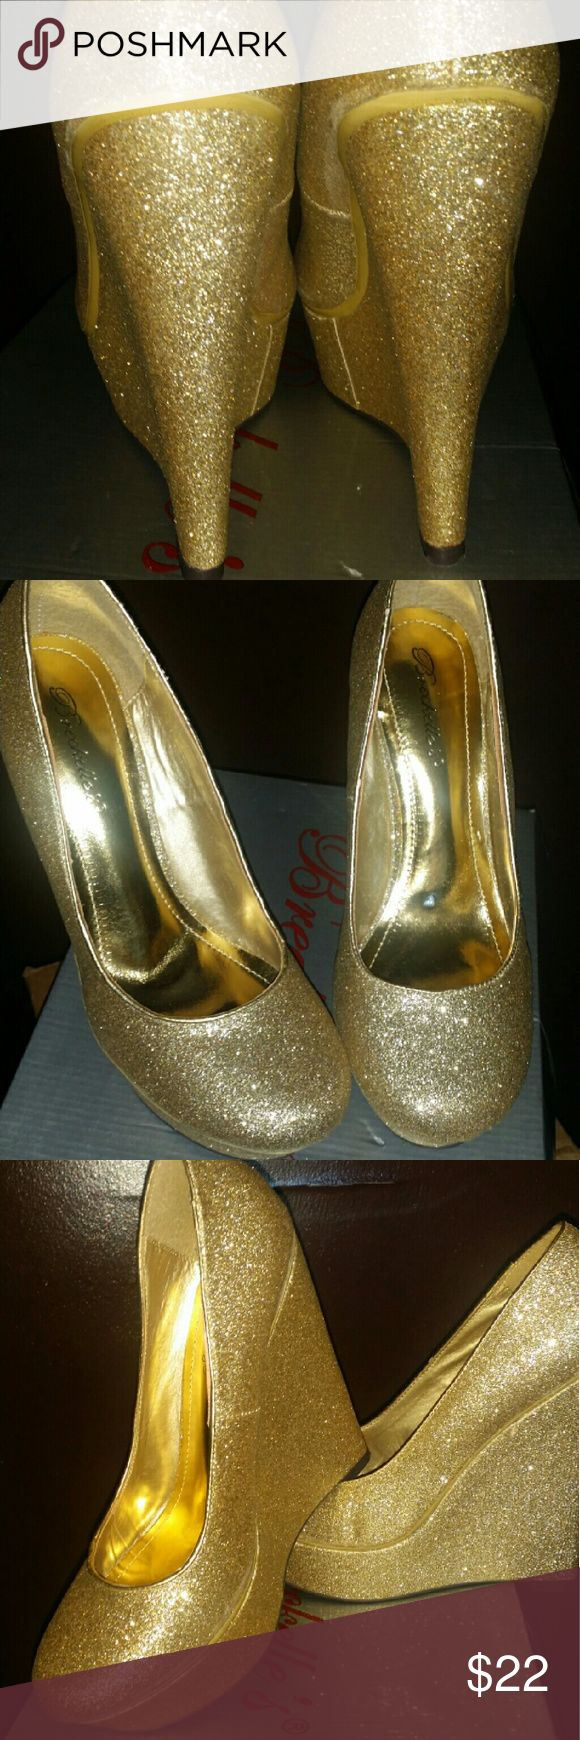 gold wedge heels Brand new  Gorgeous gold wedge sparkly heels Breckelles Shoes Wedges